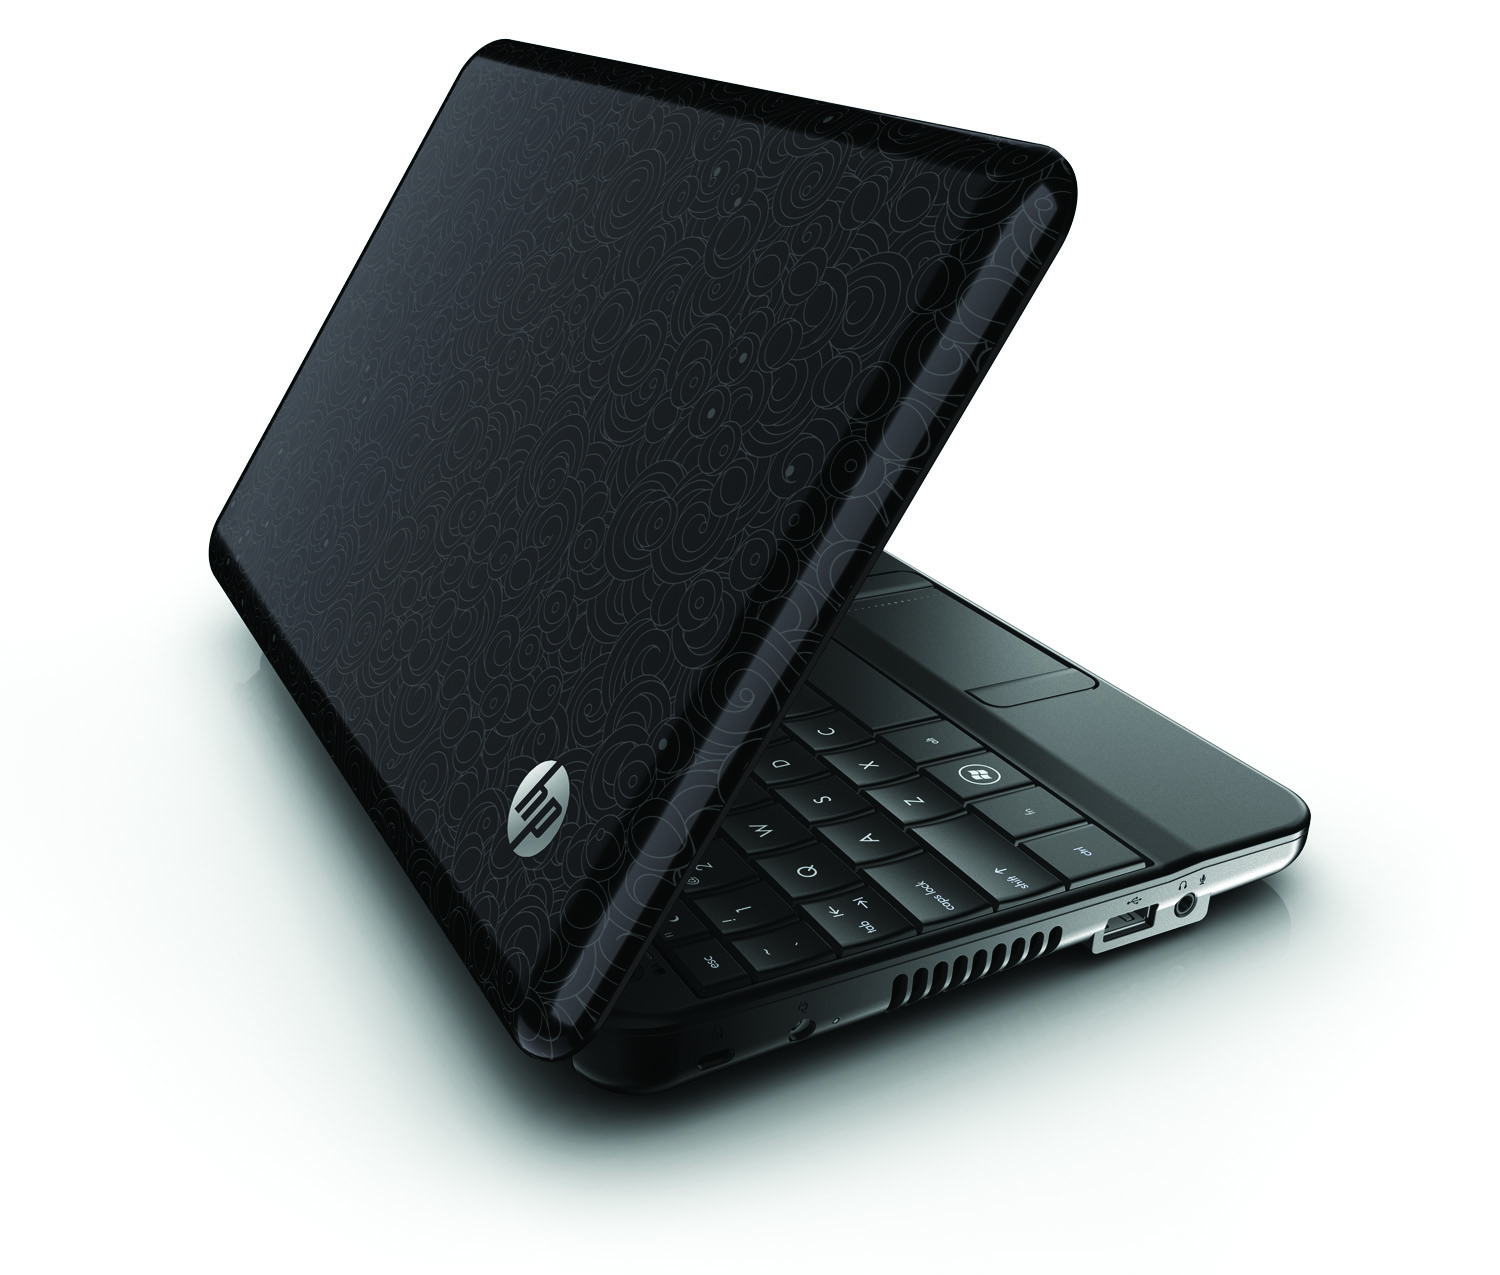 HP Mini 1101, 110 XP and 110 Mi netbooks announced